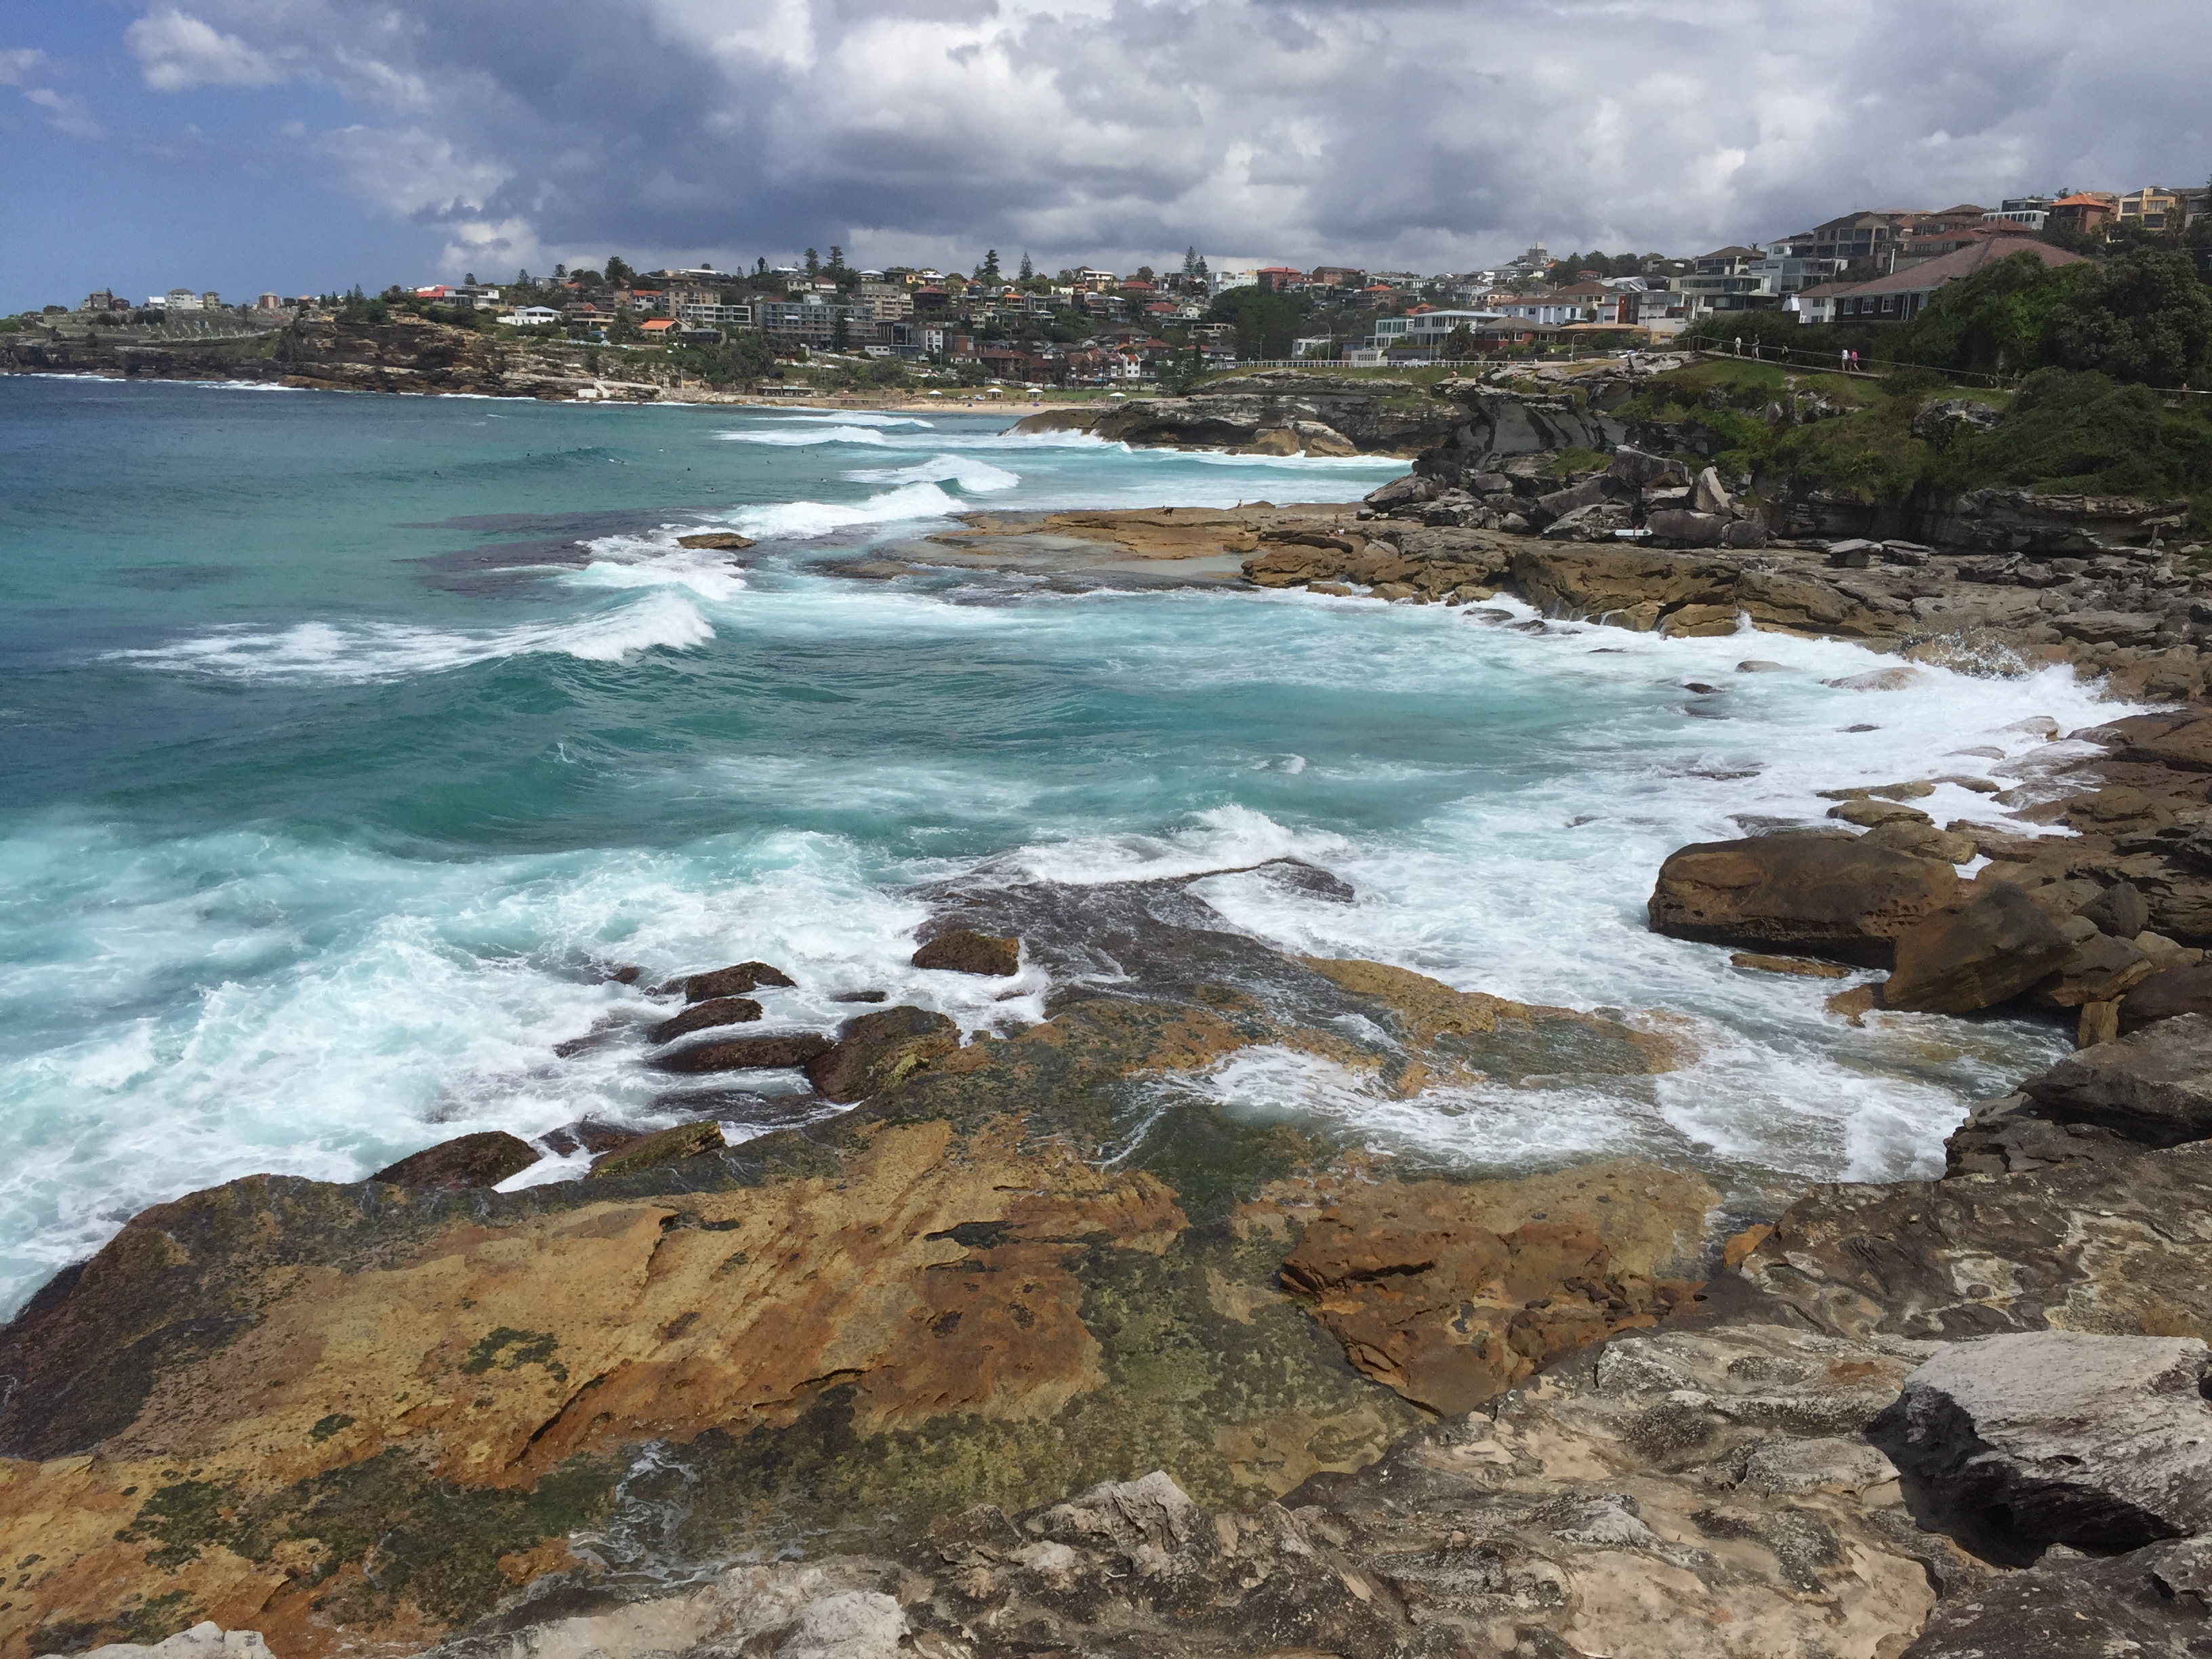 Beautiful views just outside of Bondi Beach, just a short ride from central Sydney.